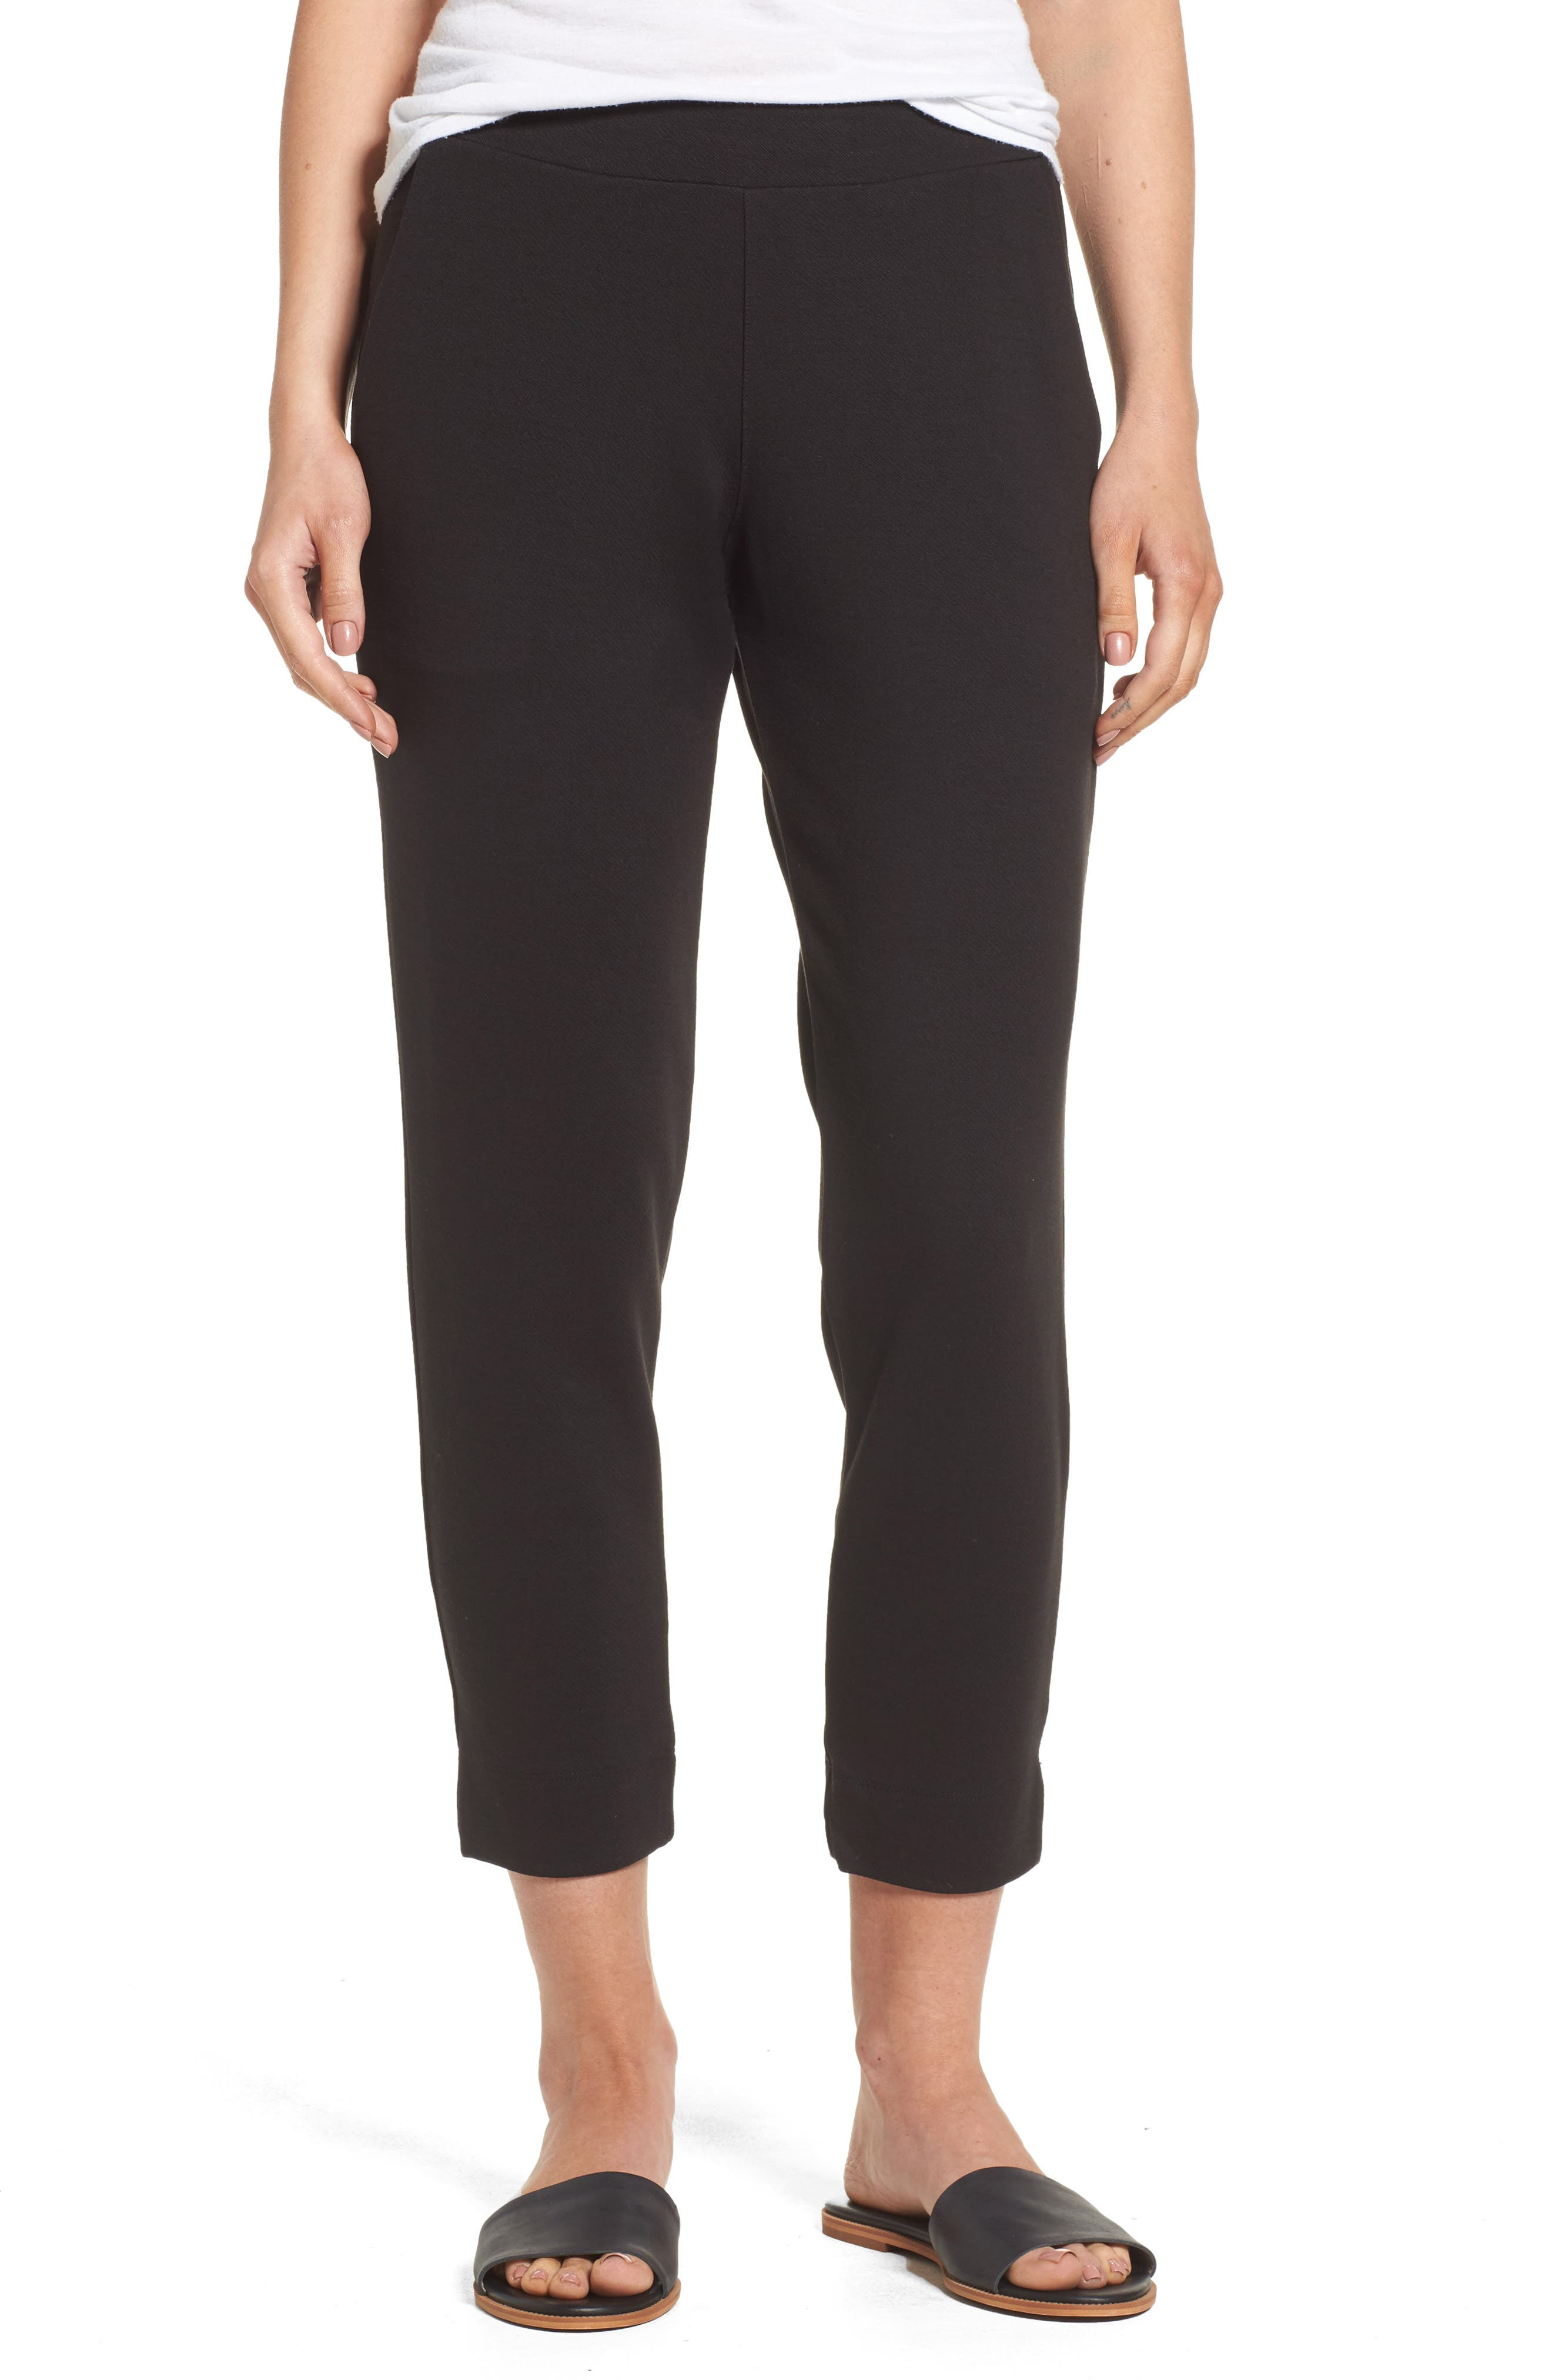 Brighton Crop Knit Cigarette Pants,                         Main,                         color, Black